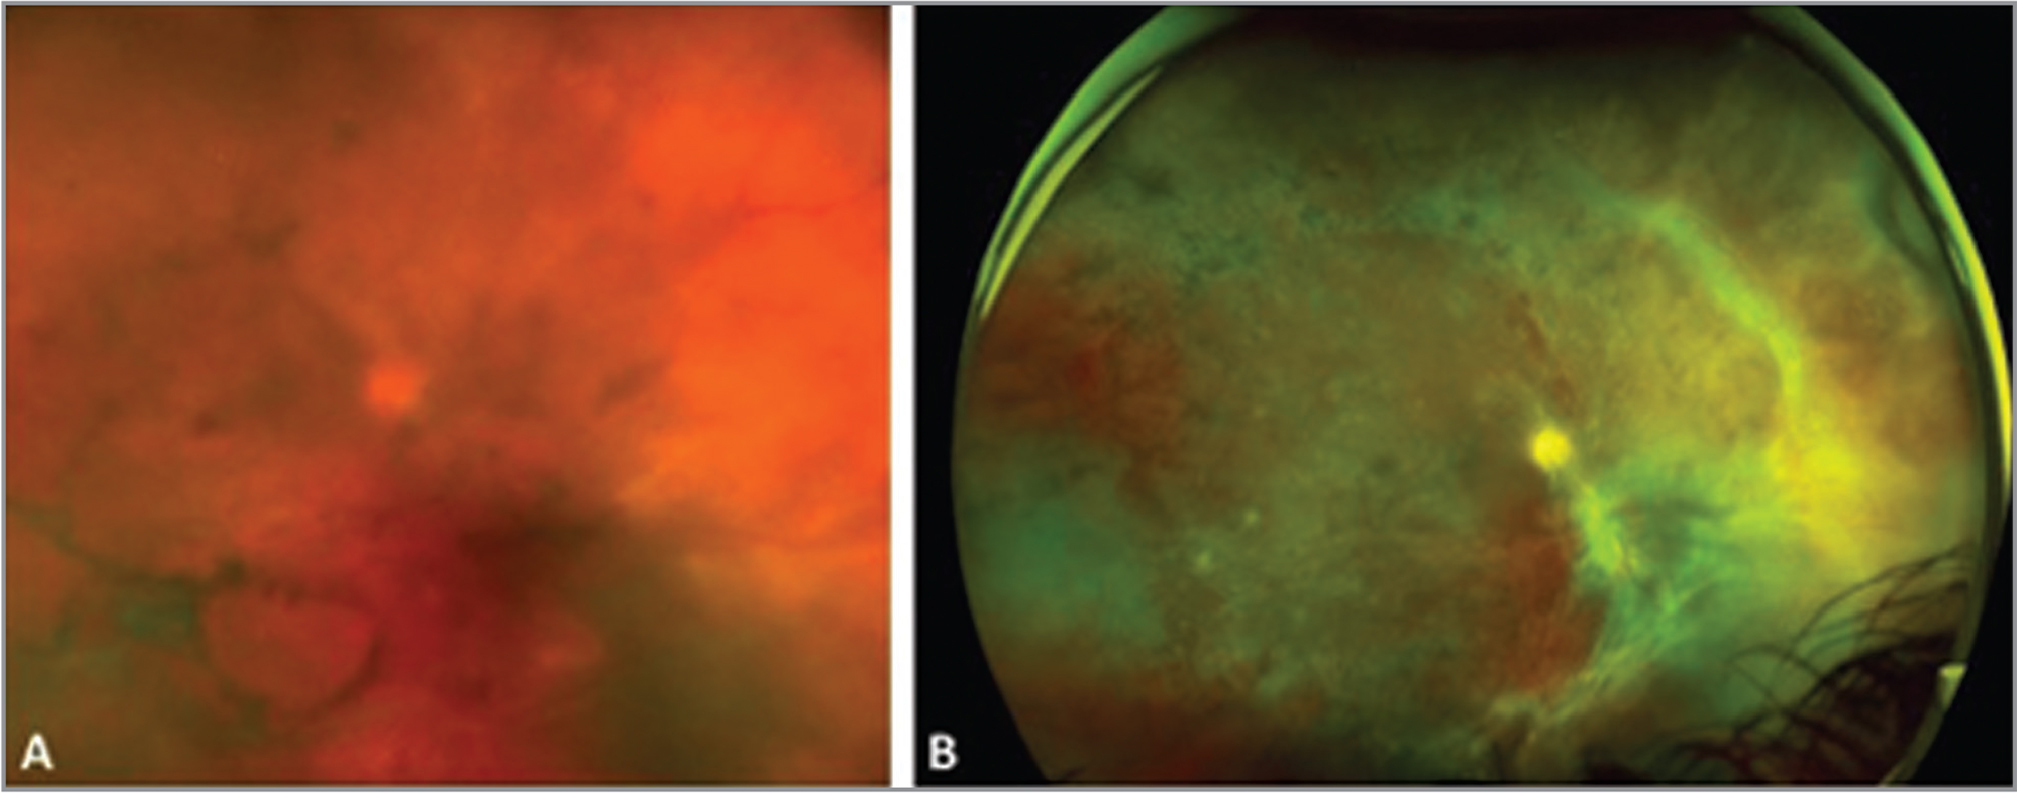 Photo of the right eye of a patient with rapid progression of acute retinal necrosis following intravitreal corticosteroid (A). She eventually developed a retinal detachment prompting vitrectomy, endolaser, and silicone oil instillation but developed significant fibrovascular proliferation (B).